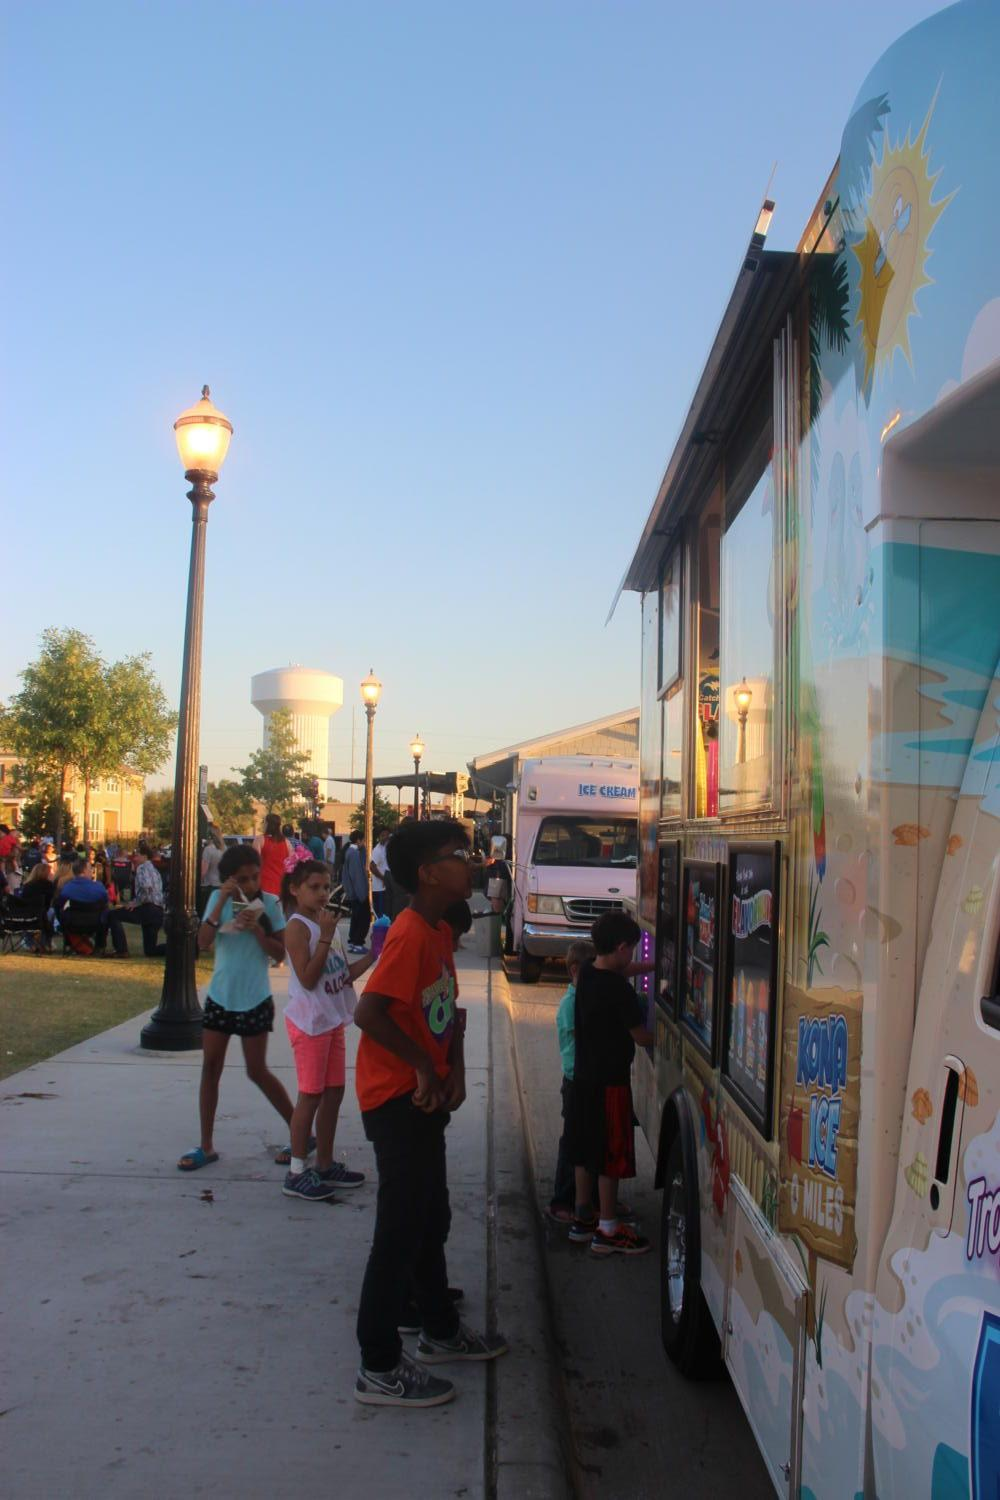 Food+trucks+line+up+along+the+sidewalk+so+that+many+visitors+could+purchase+food+and+drinks+at+the+Concert+on+the+Lawn+at+the+Square+in+Old+Town+Coppell+last+night.+There+were+many+vendors+such+as+Kona+Ice%2C+Dodie%E2%80%99s+and+Frost+Cupcakery.